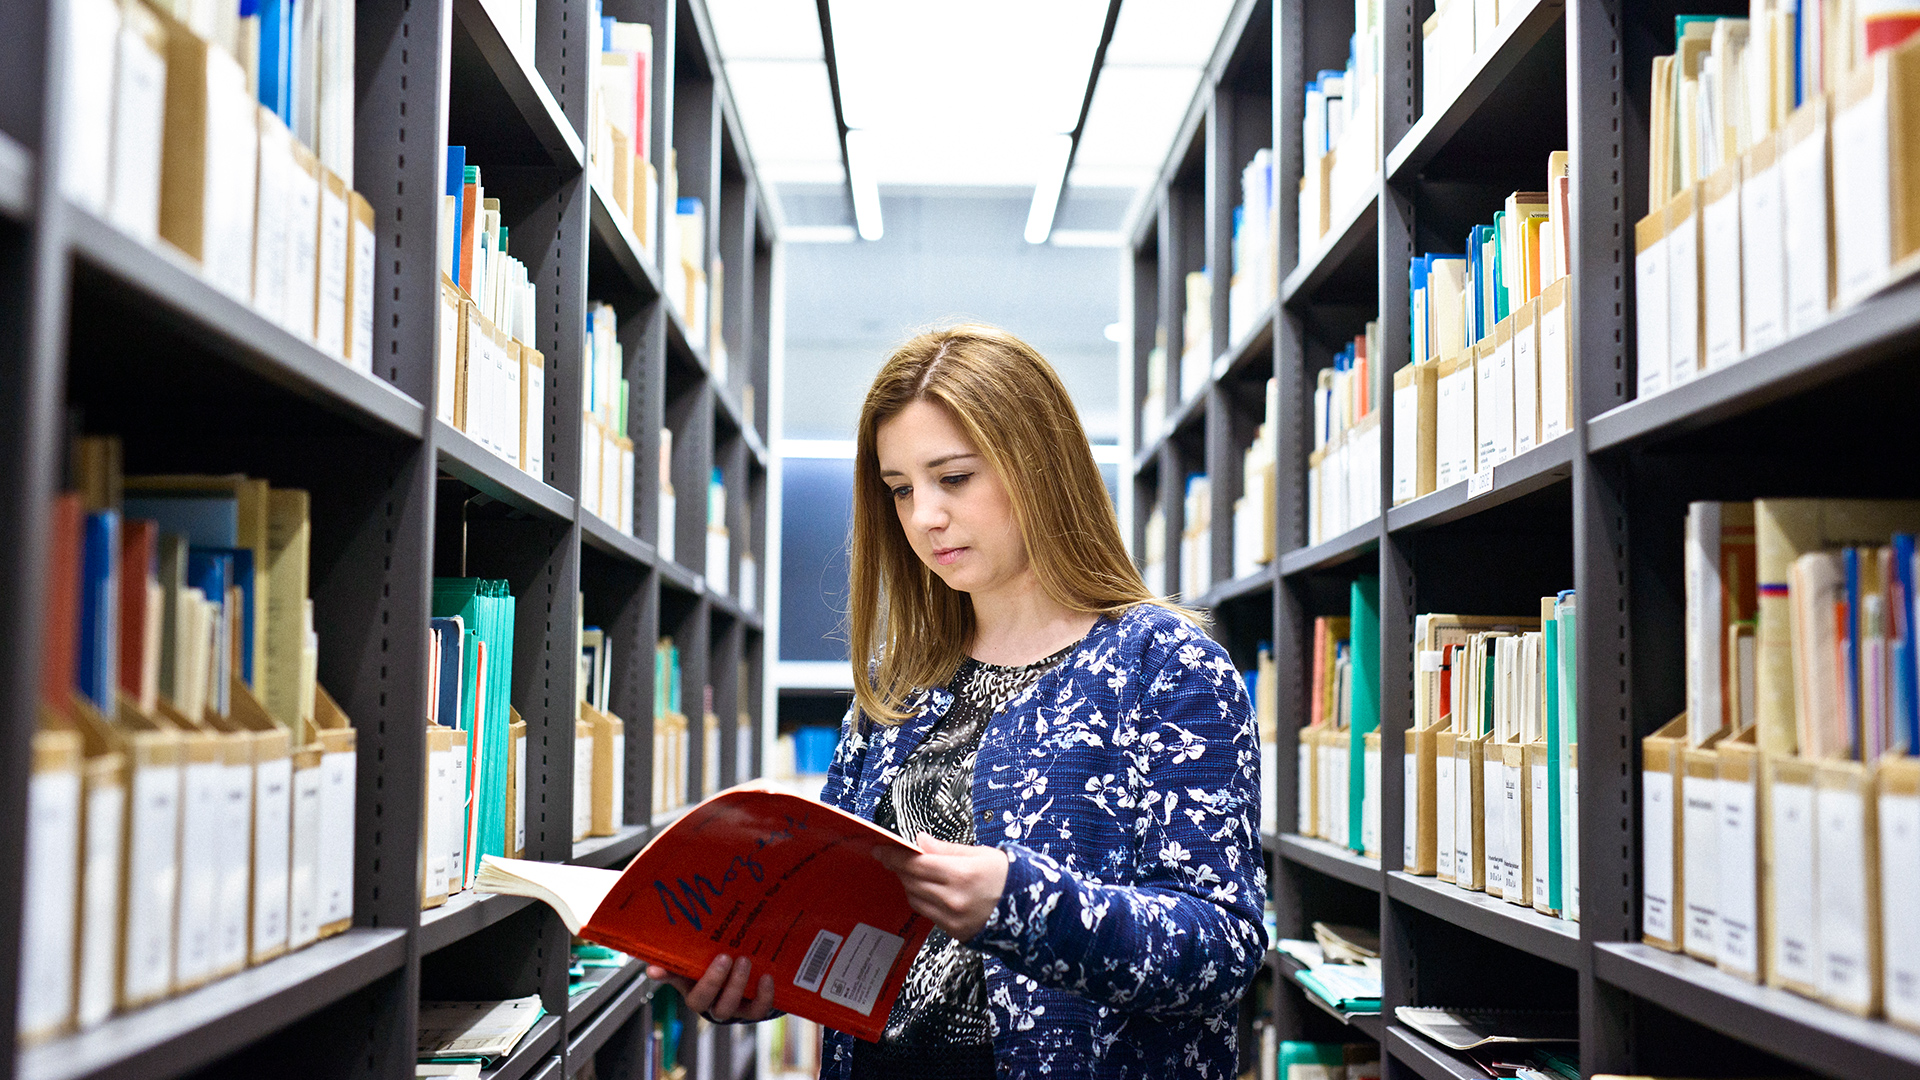 Person in a library browsing through a publication.